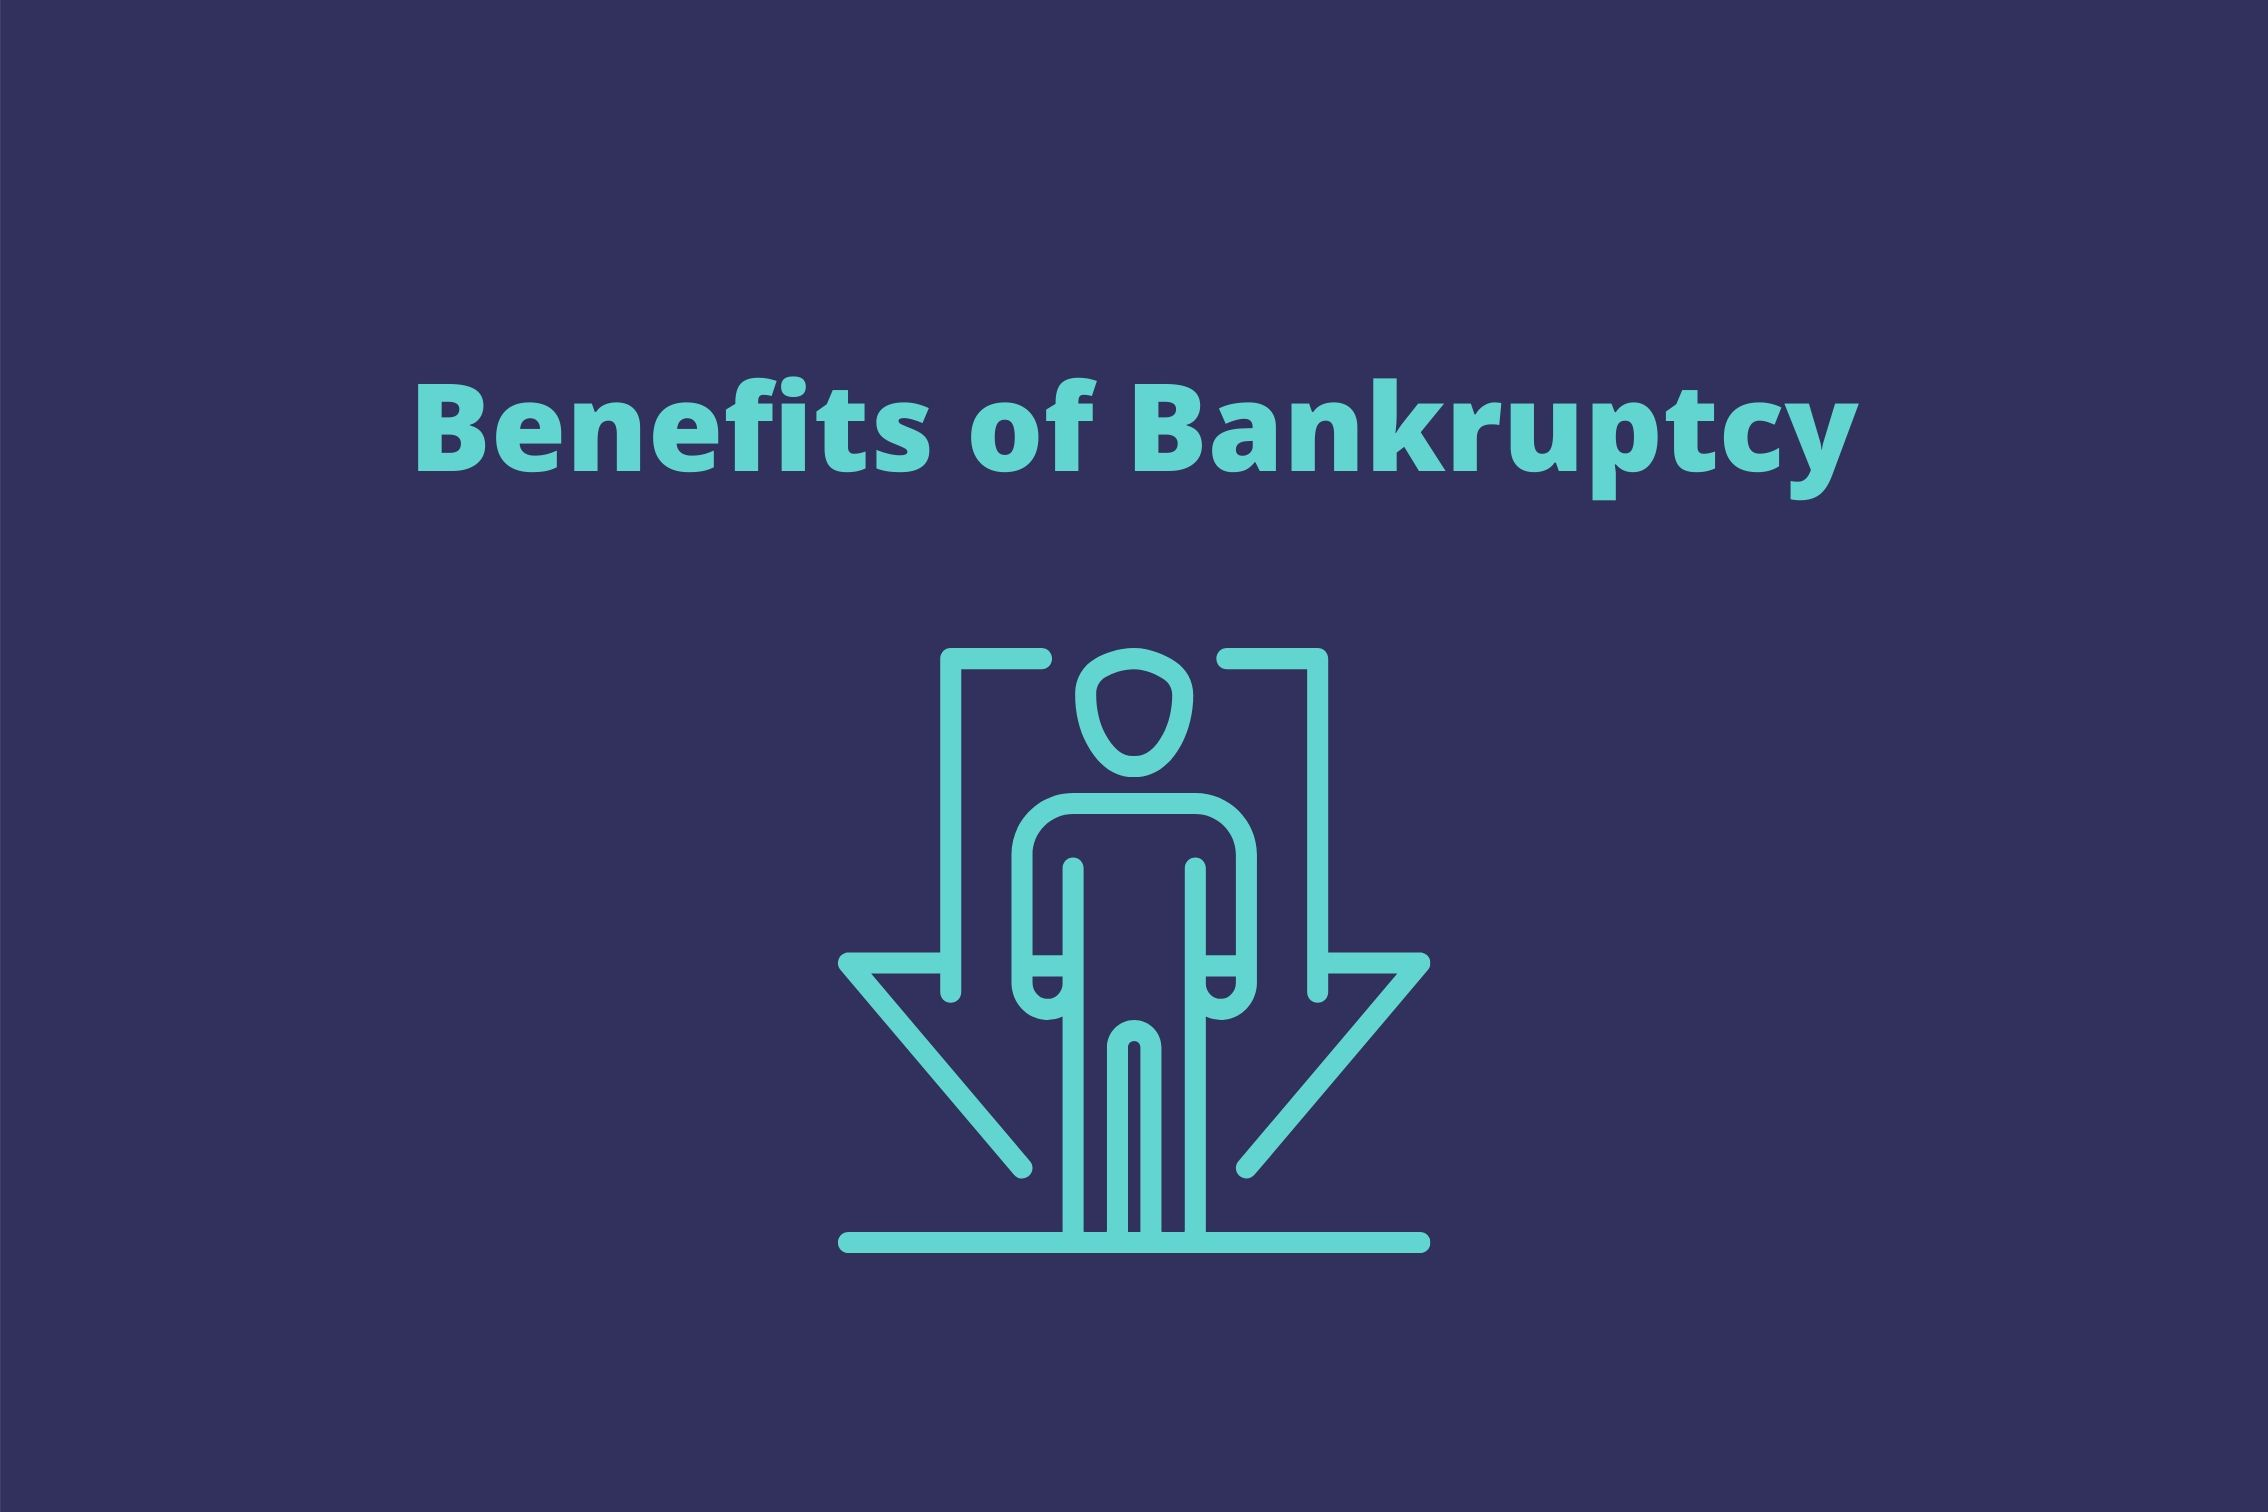 Benefits of Bankruptcy